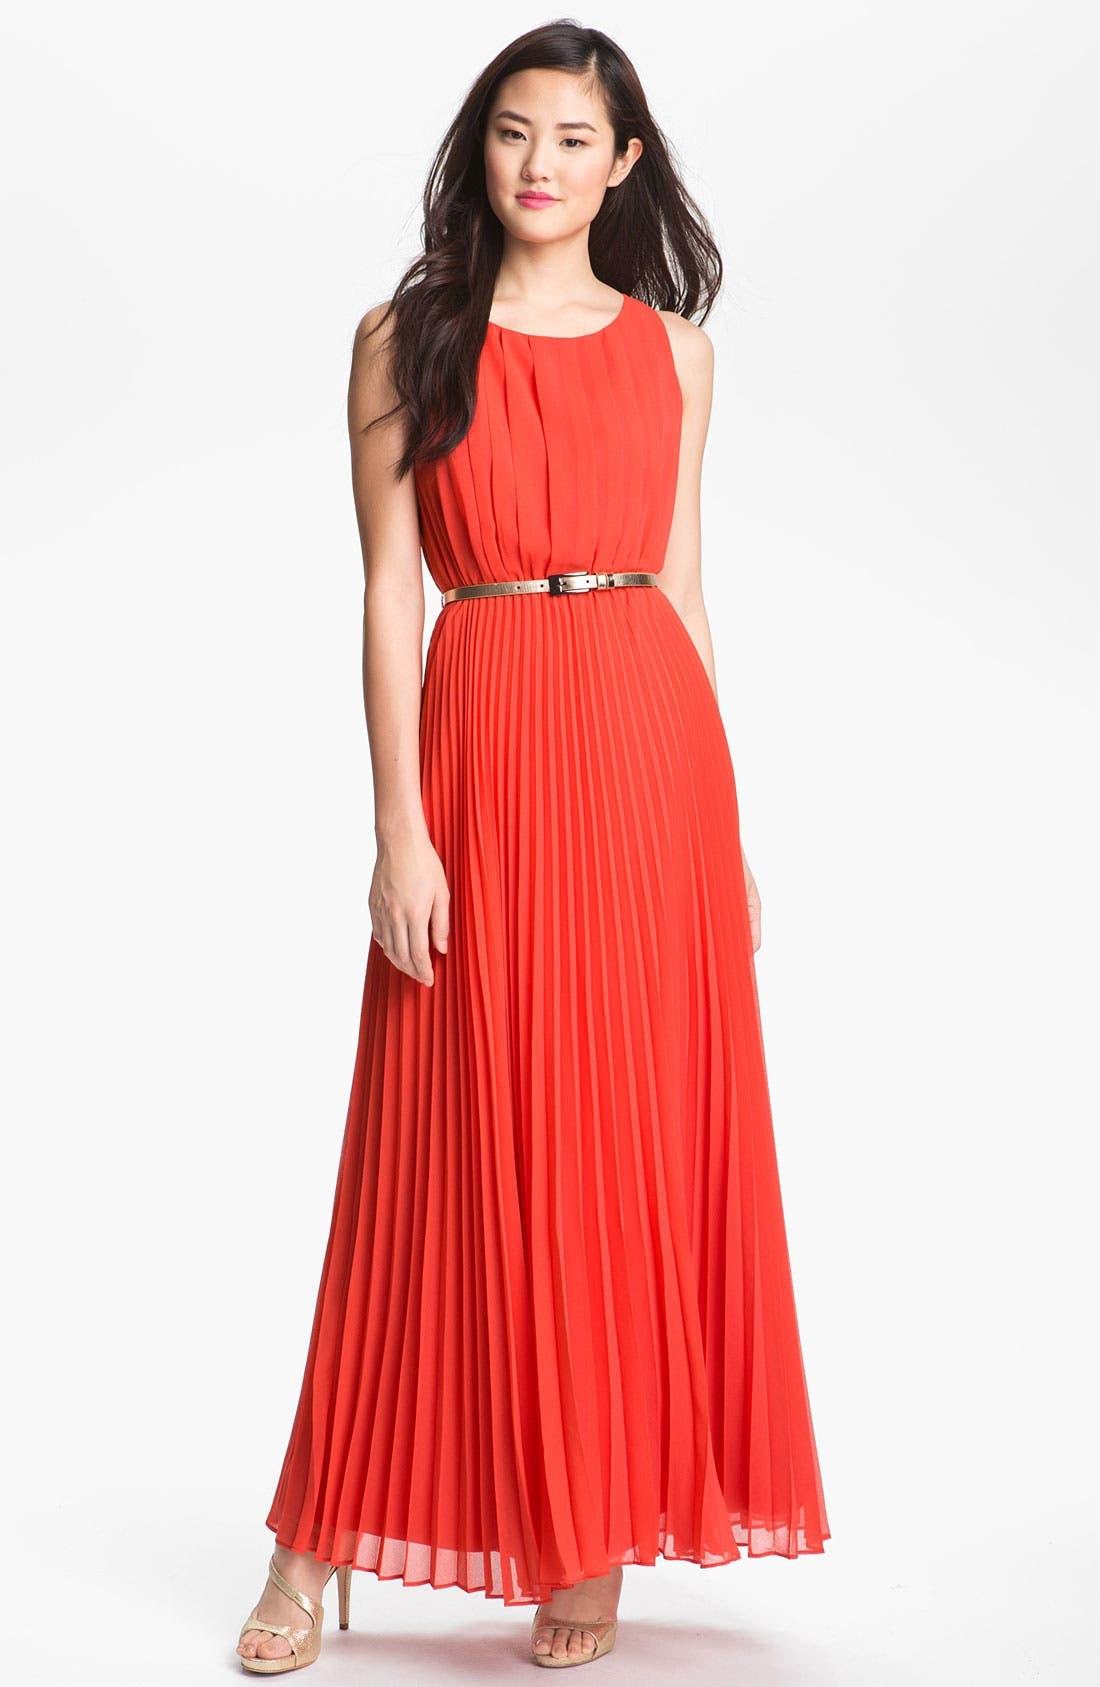 Alternate Image 1 Selected - Eliza J Pleated Chiffon Maxi Dress (Regular & Petite)